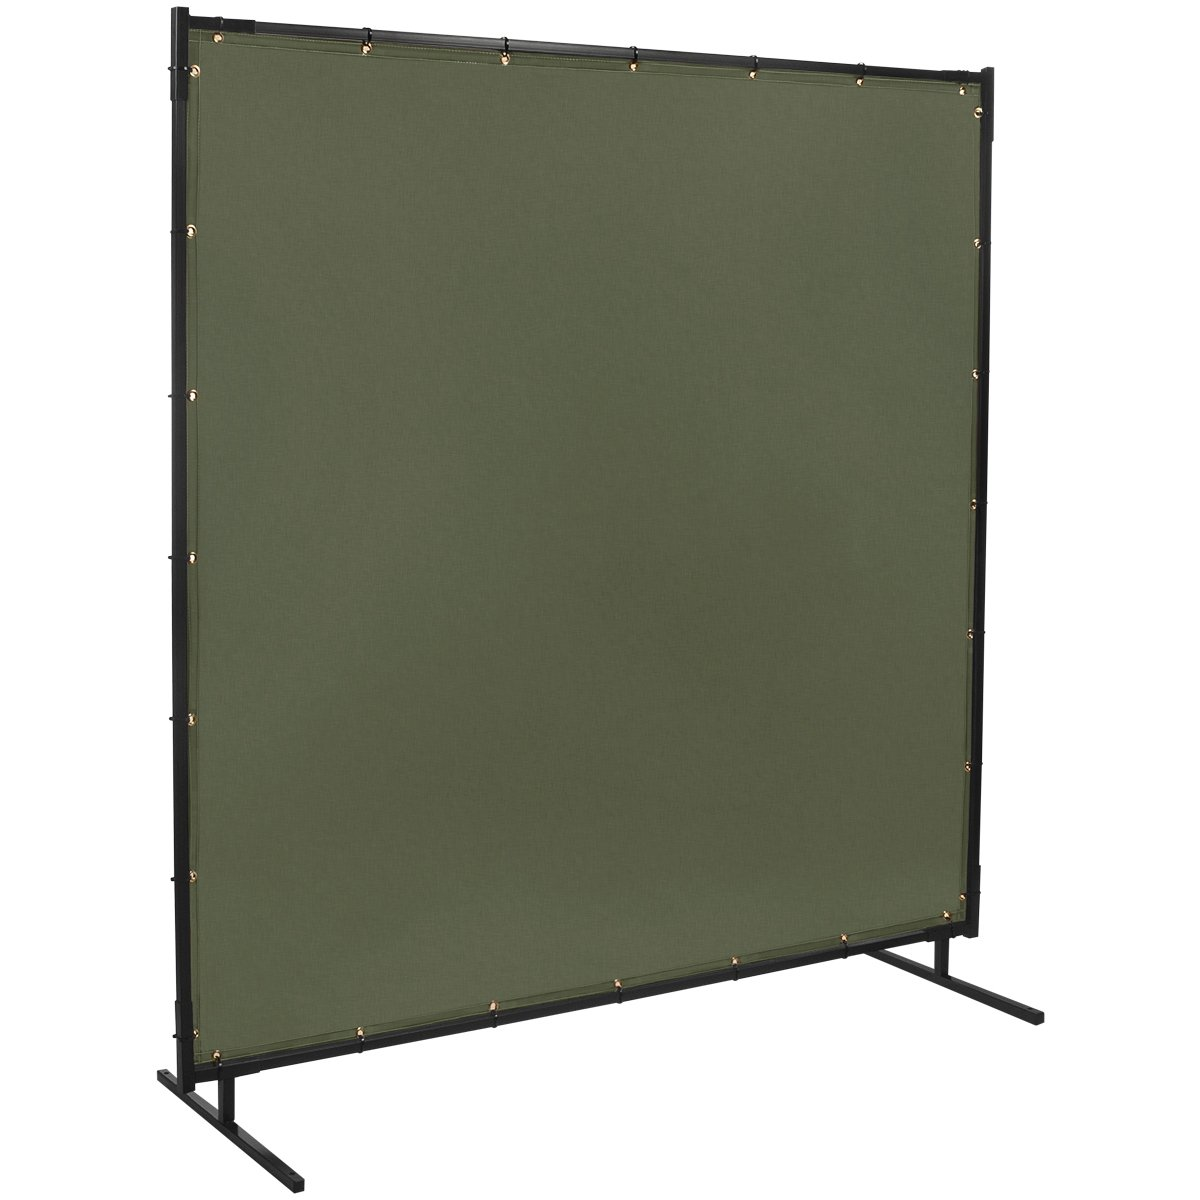 Steiner 501-6X6 Protect-O-Screen Classic Welding Screen with Flame Retardant 12-Ounce Canvas Curtain, Duck Olive Green, 6' x 6' 6' x 6' ERB